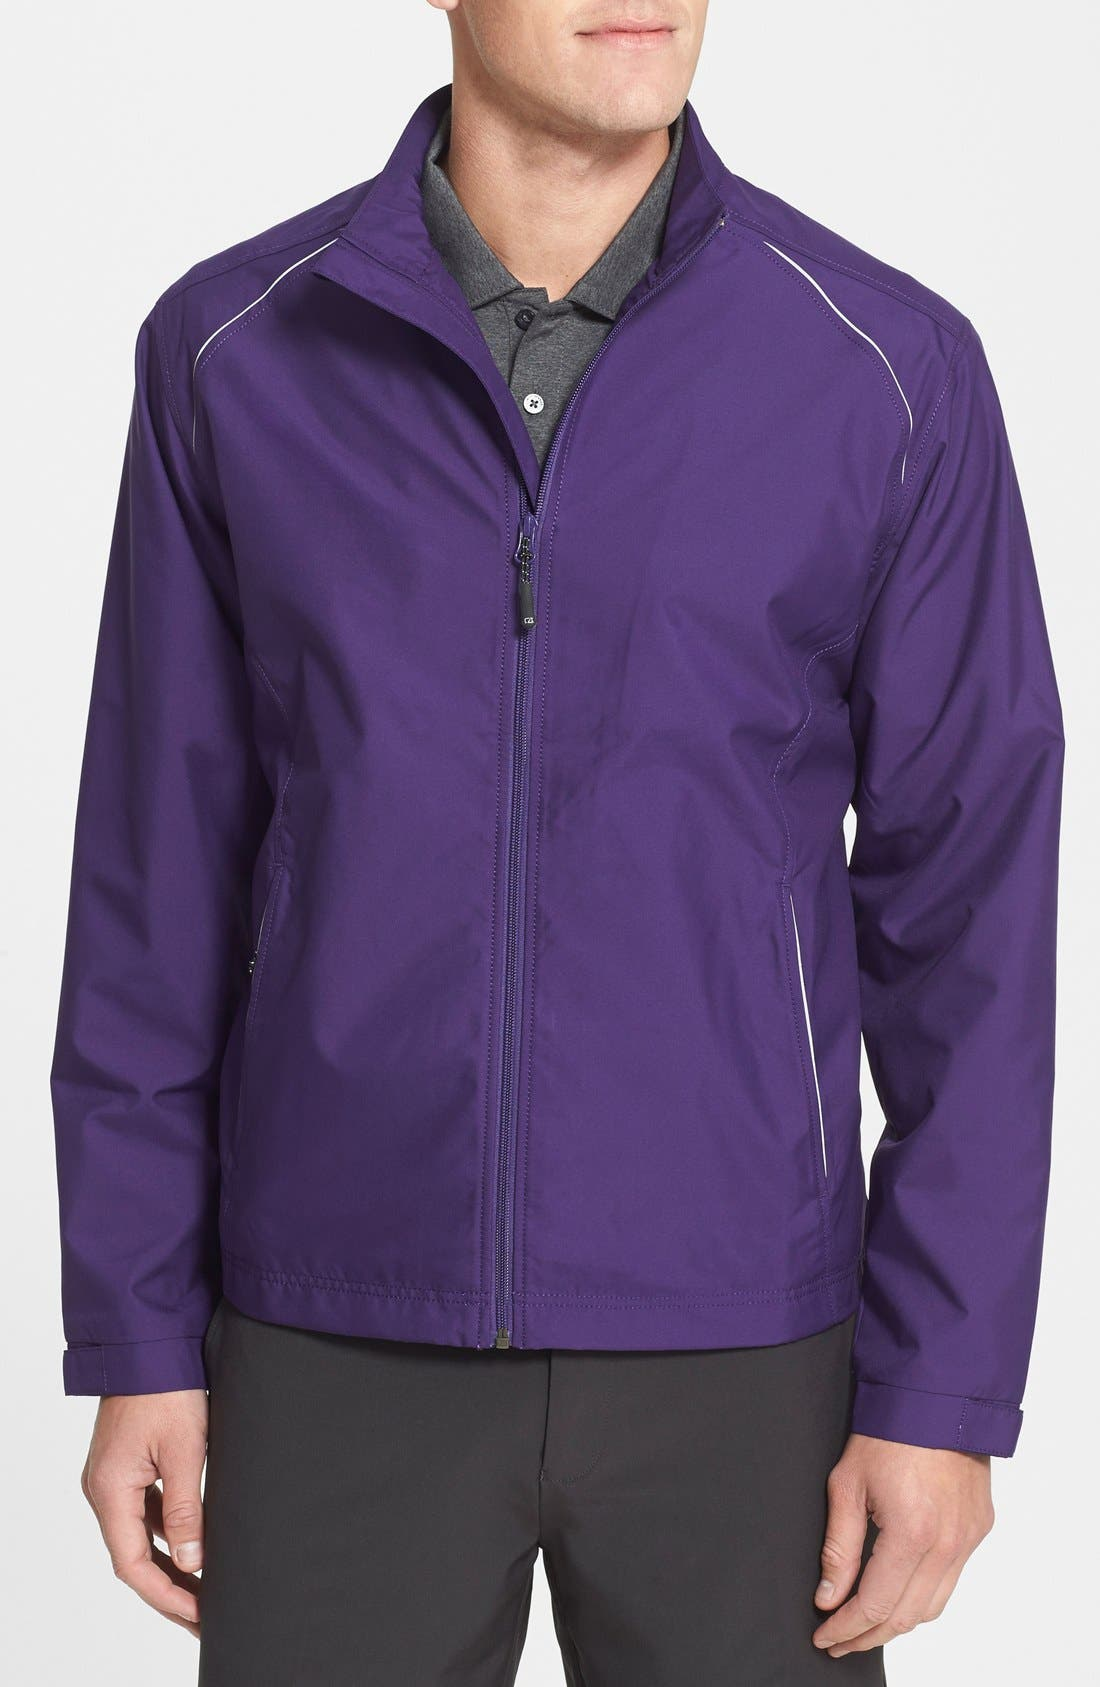 WeatherTec Beacon Water Resistant Jacket,                             Main thumbnail 1, color,                             College Purple